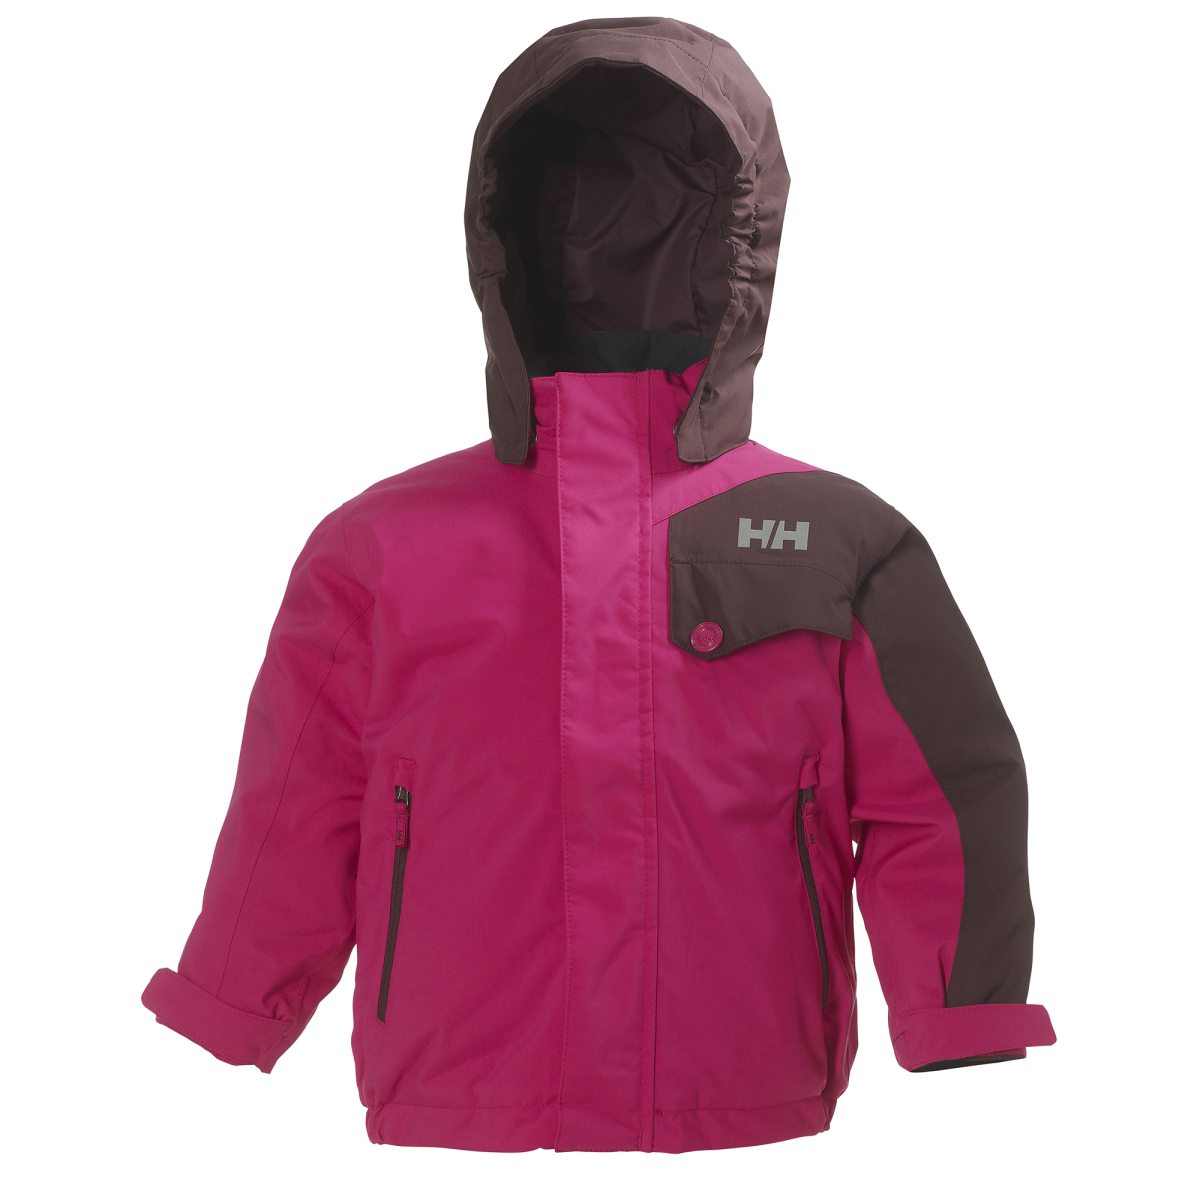 ed99f854 Buy tuxer north pole jacket rosa no. Shop every store on the ...